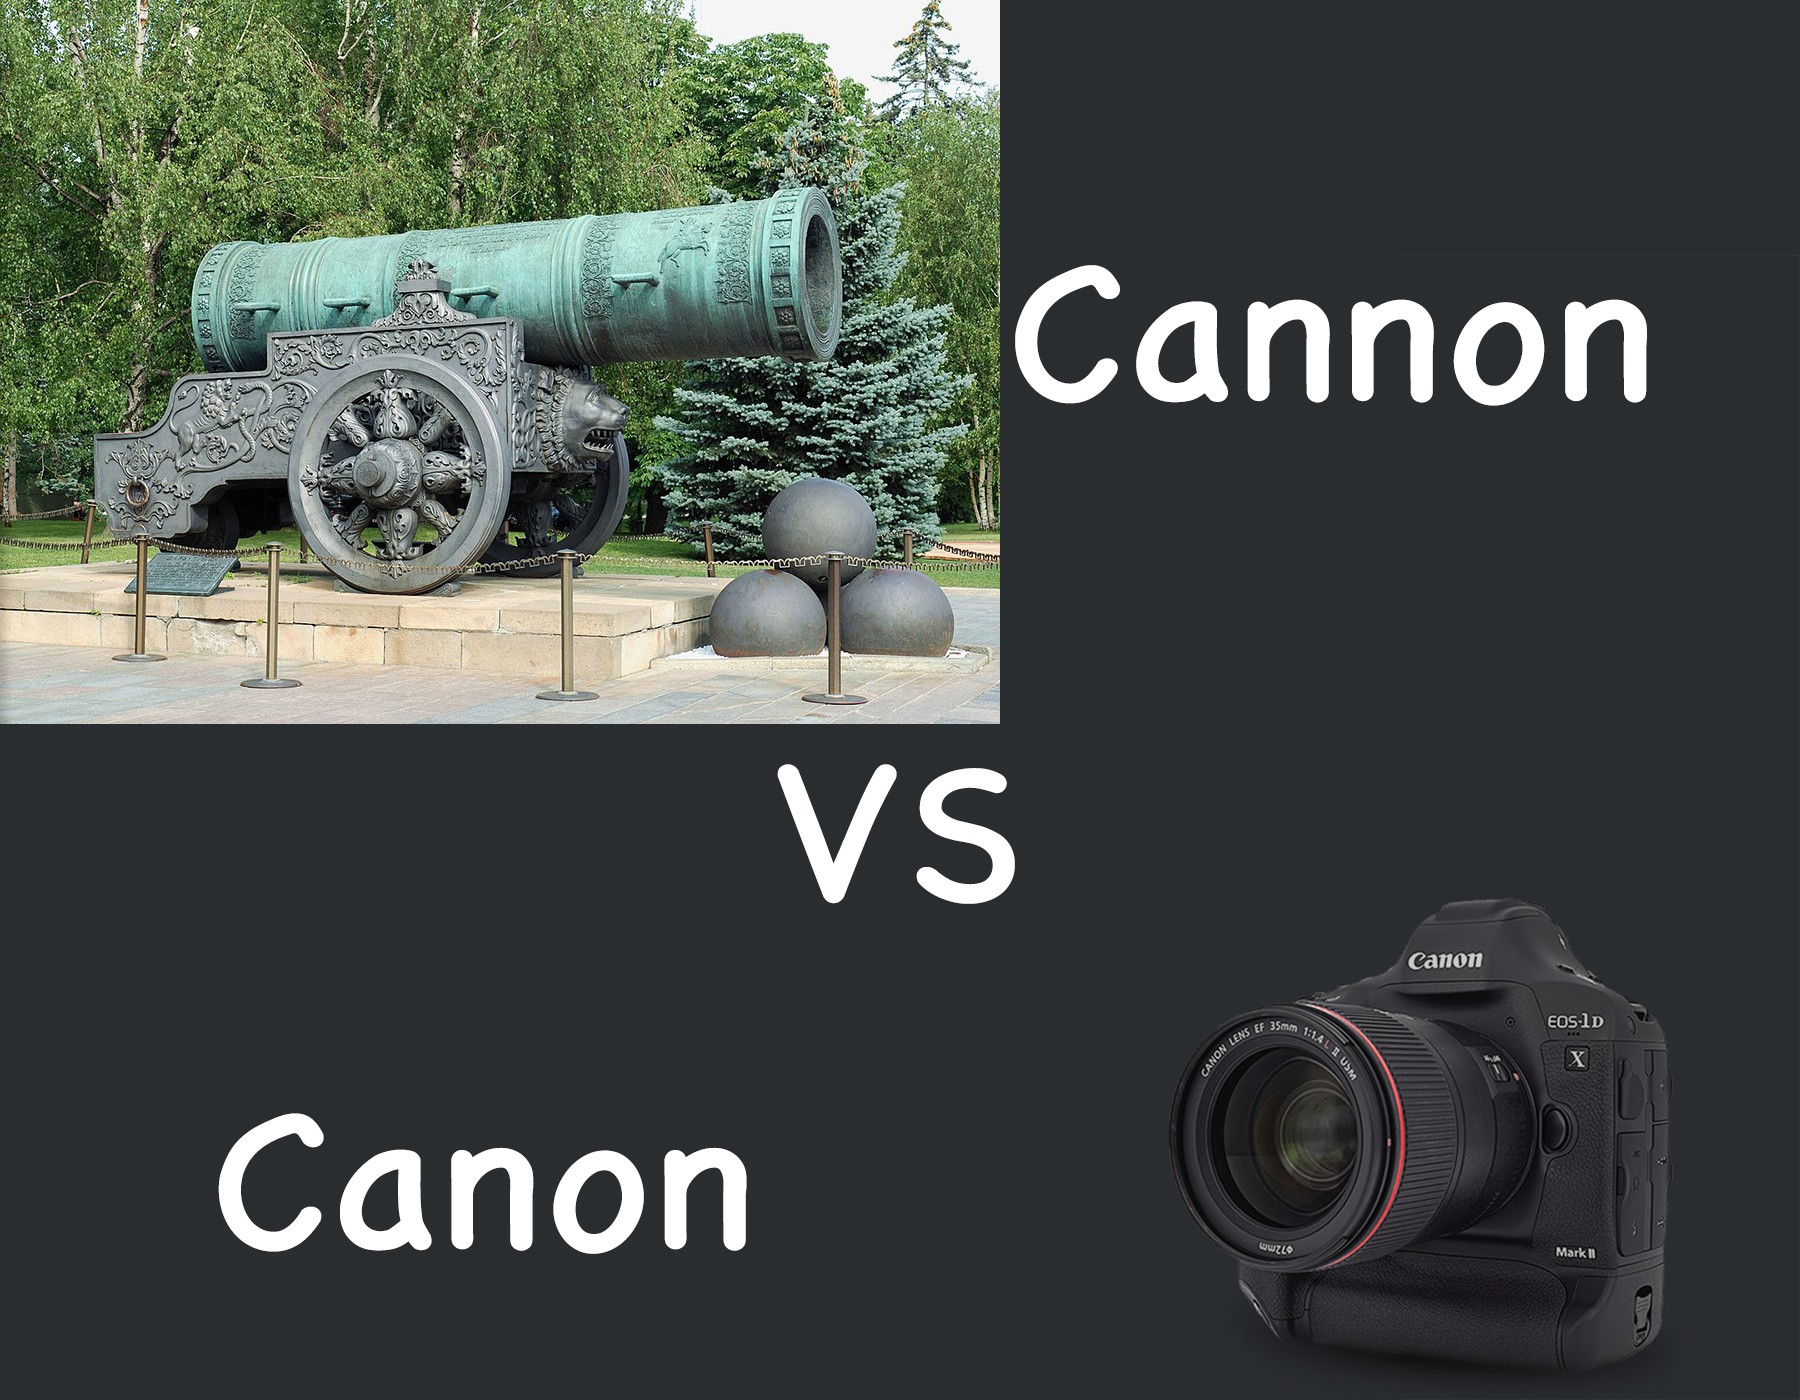 Cannon vs Canon.jpg